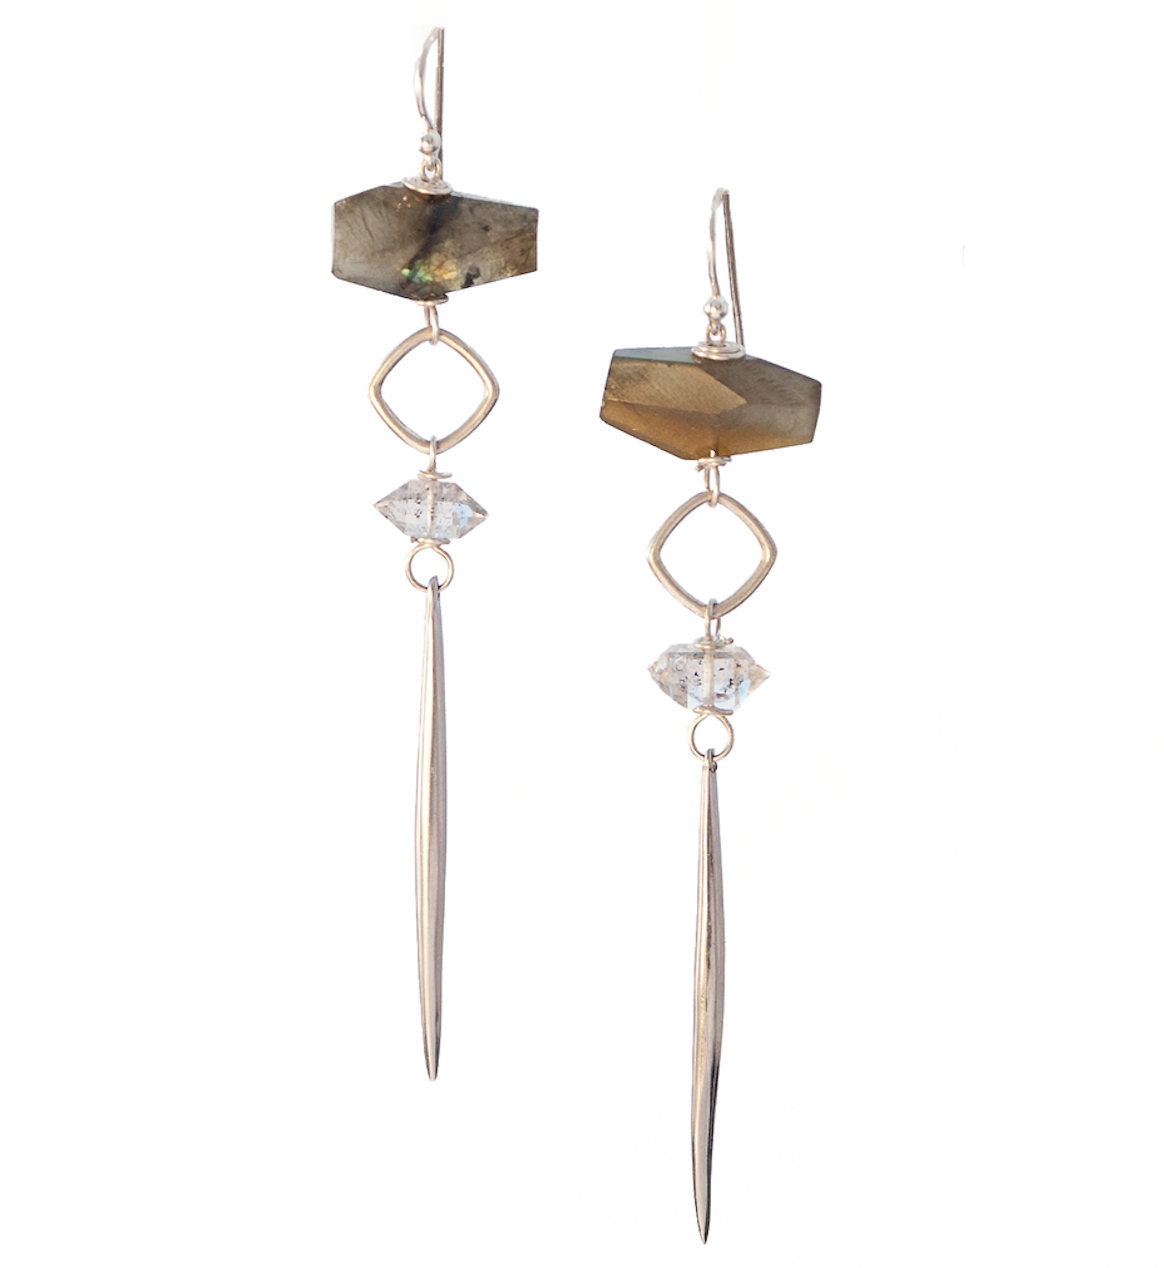 Seraphim Kinship Earrings with Labradorite, Herkimer Diamond & Long Porcupine Quill in Gold